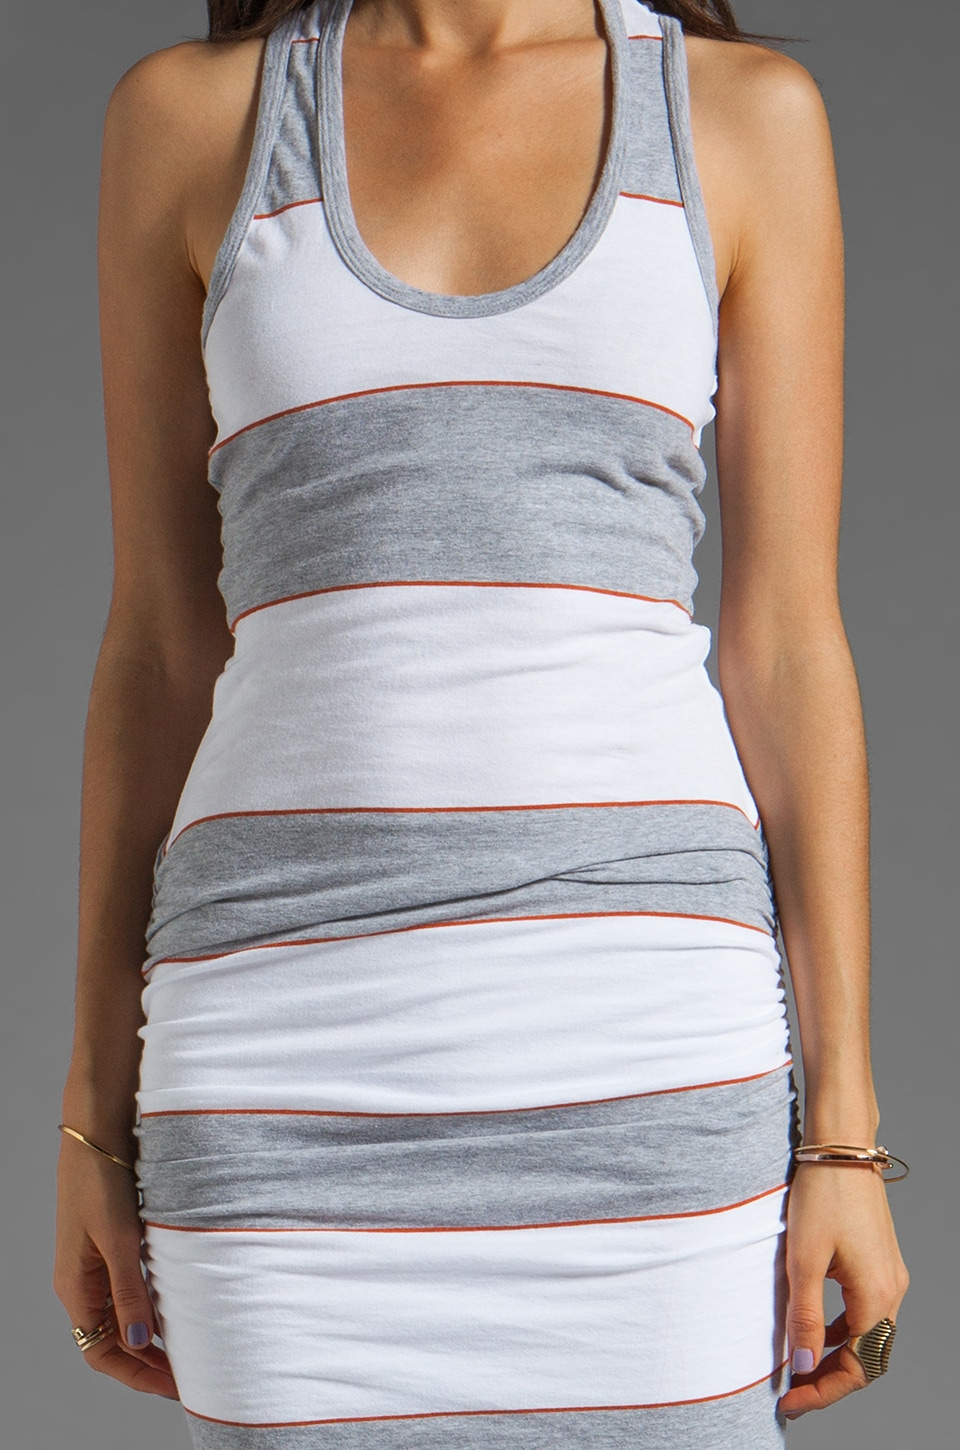 James Perse Coastal Stripe Tank Dress in Heather Grey/White